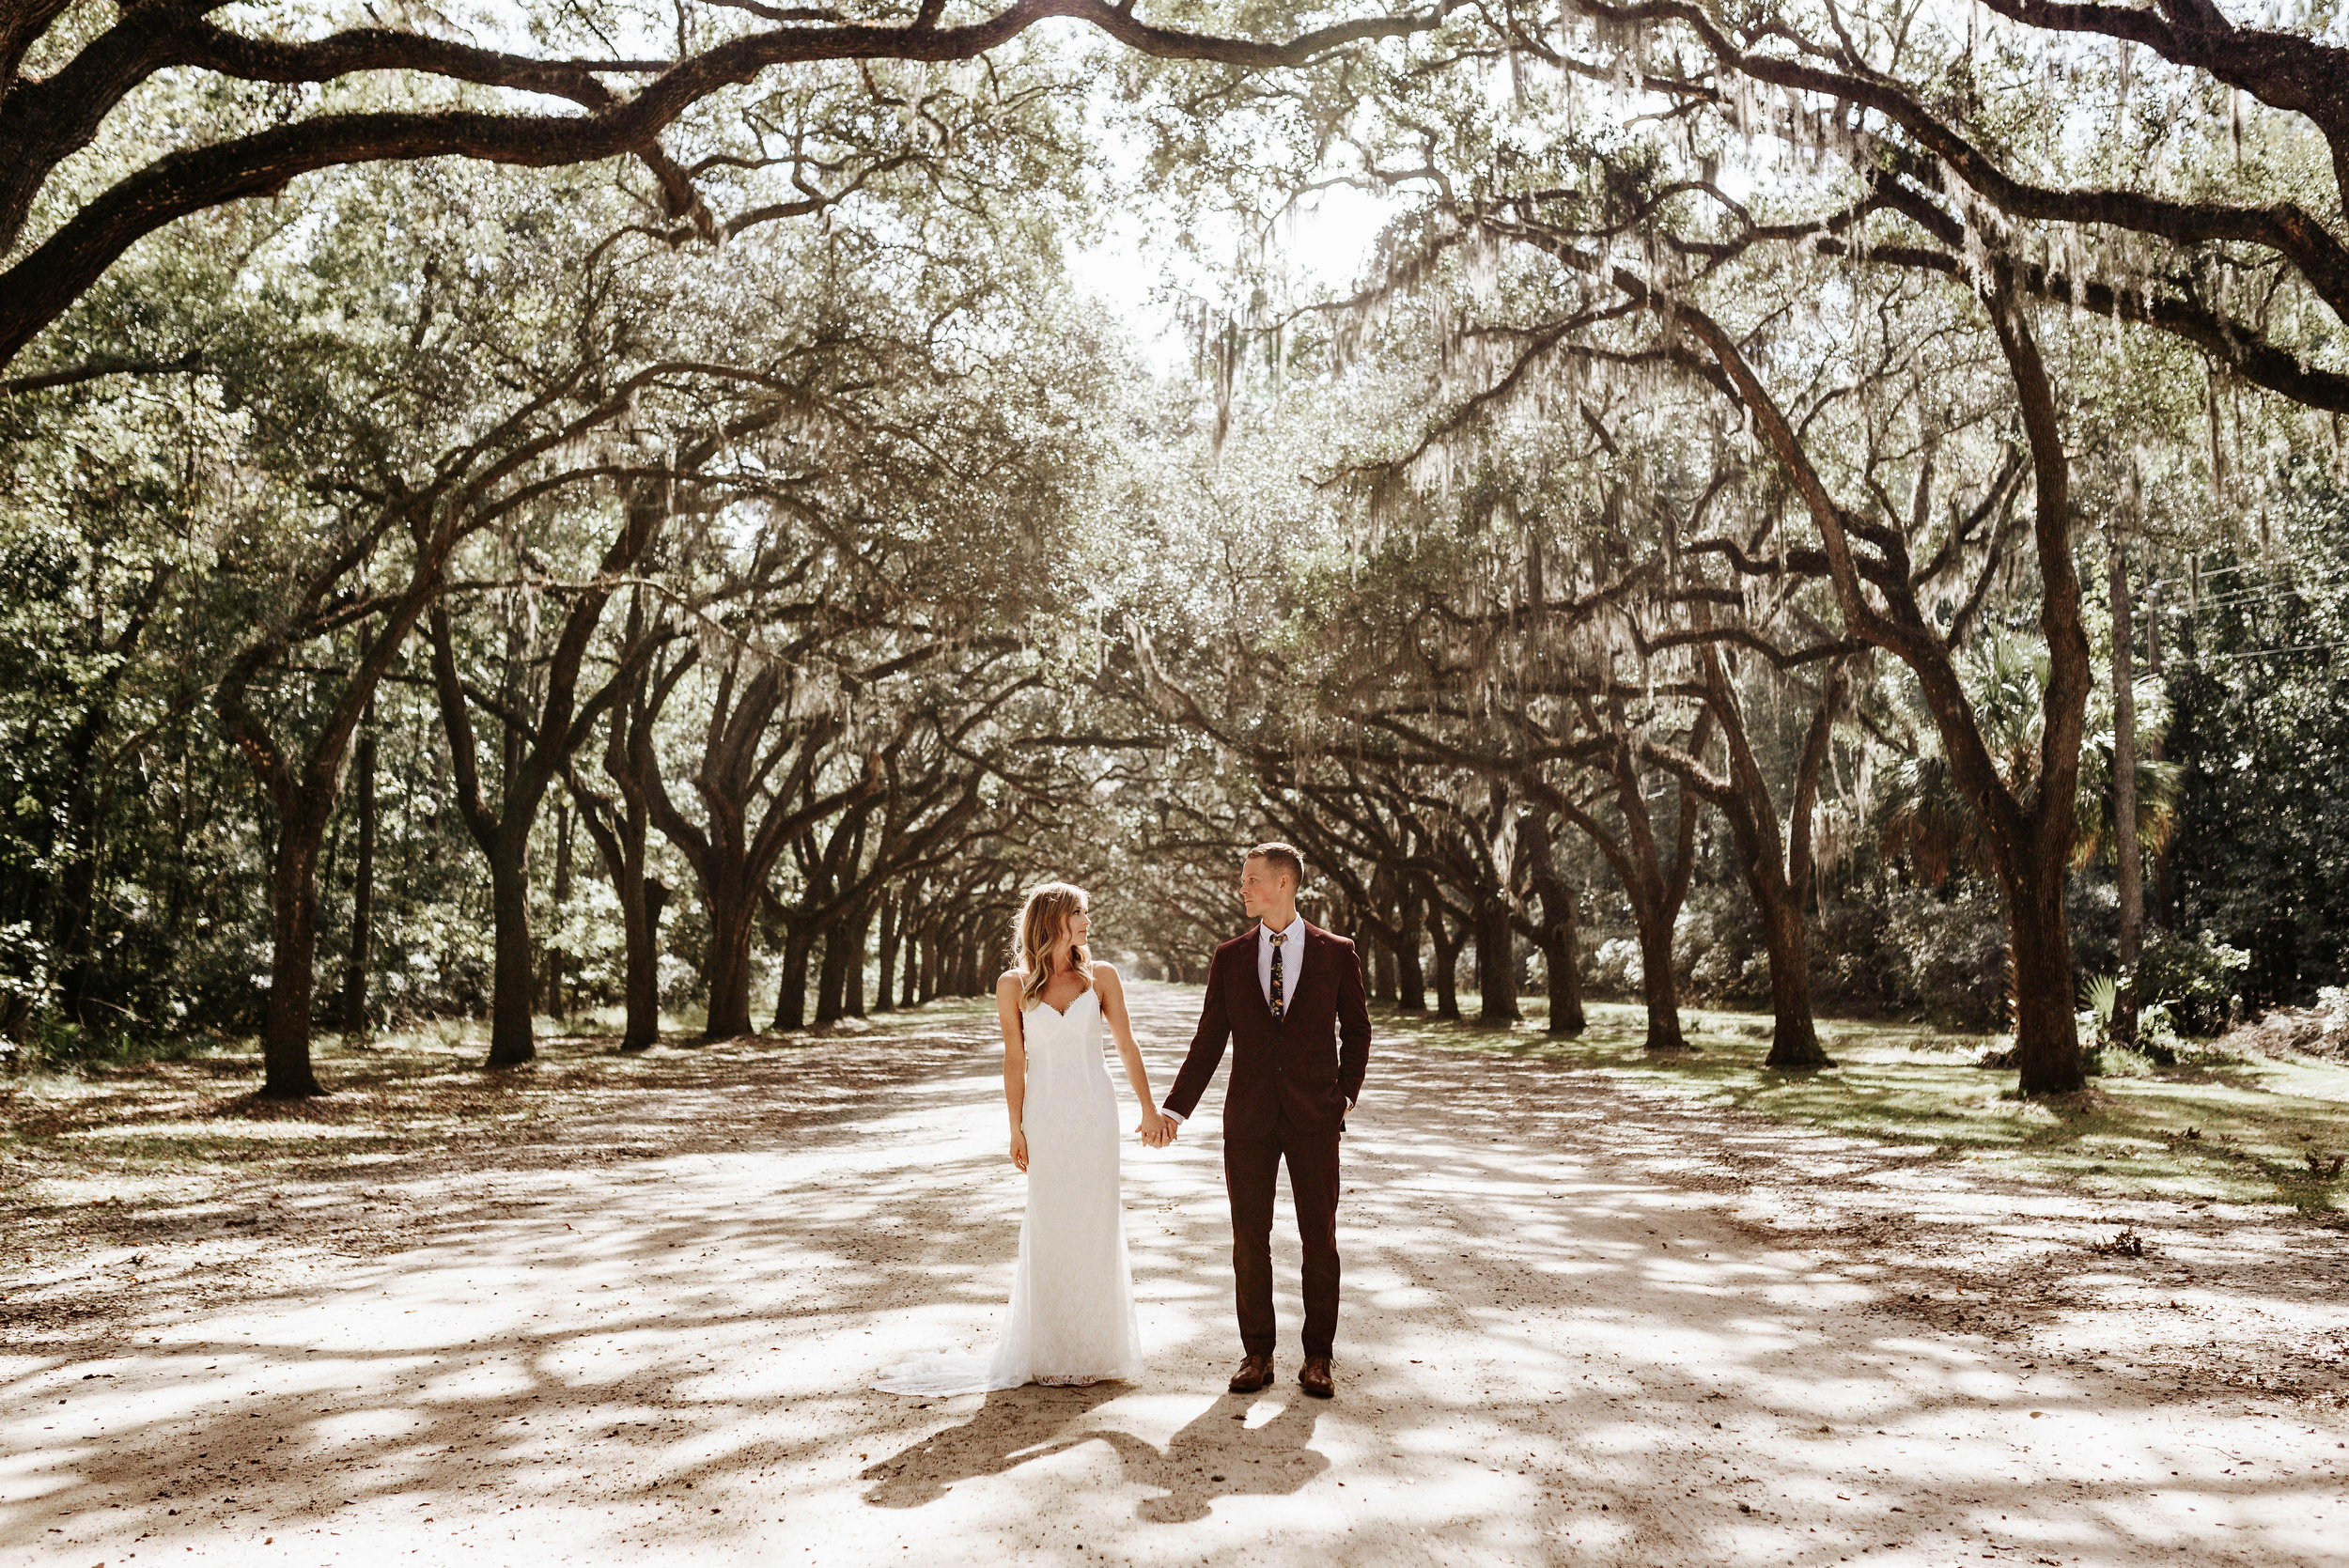 Kourtney_Sean_Savannah_Georgia_Wedding_Wormsloe_Histroic_Site_Coastal_Georgia_Botanical_Gardens_Photography_by_V_3690.jpg